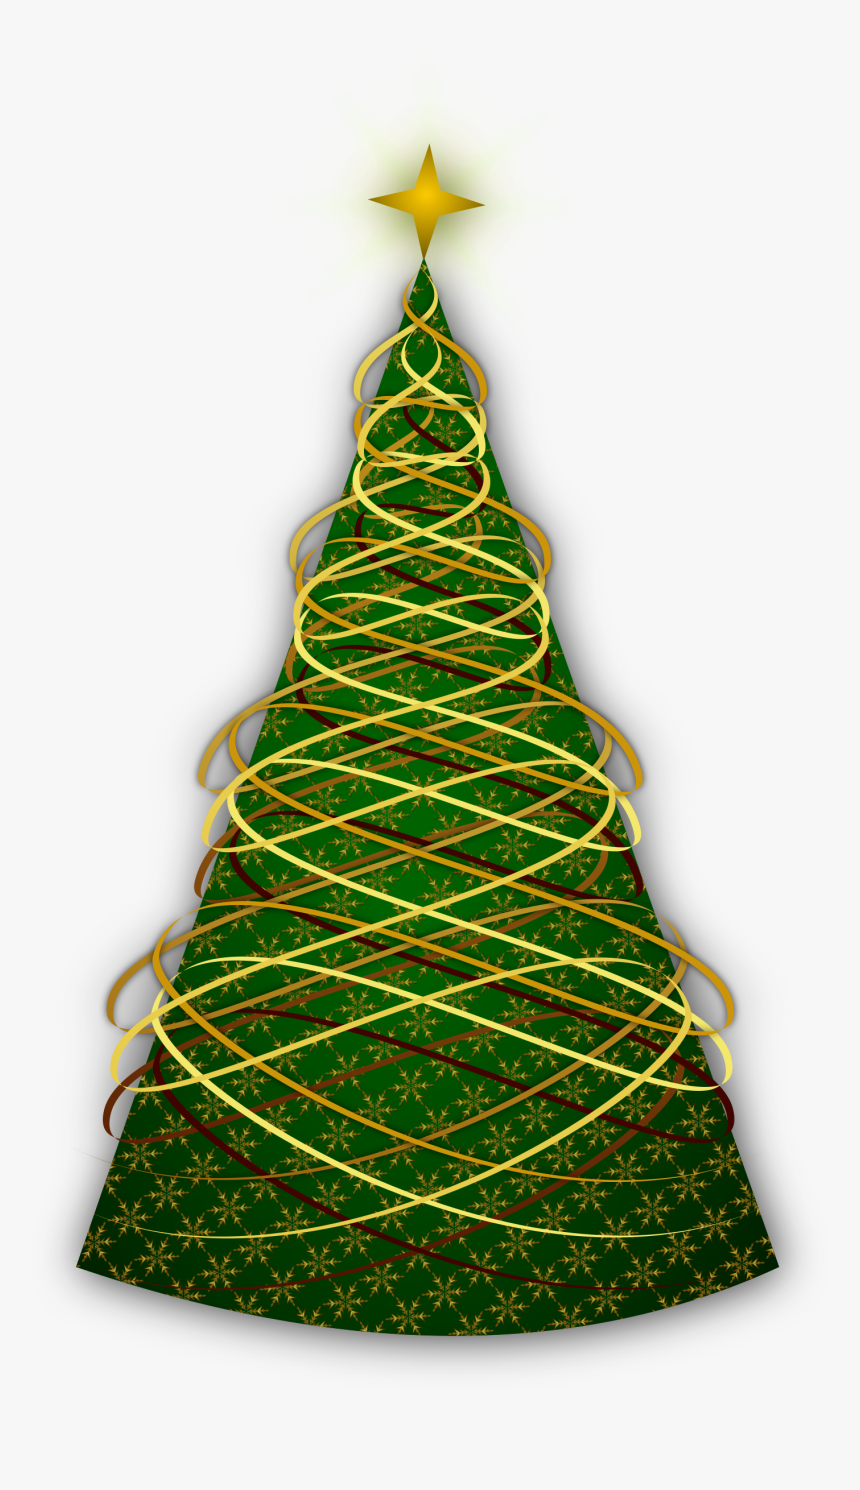 Christmas Tree Christmas Ornament New Year Tree - Elegant Png Christmas Tree, Transparent Png, Free Download